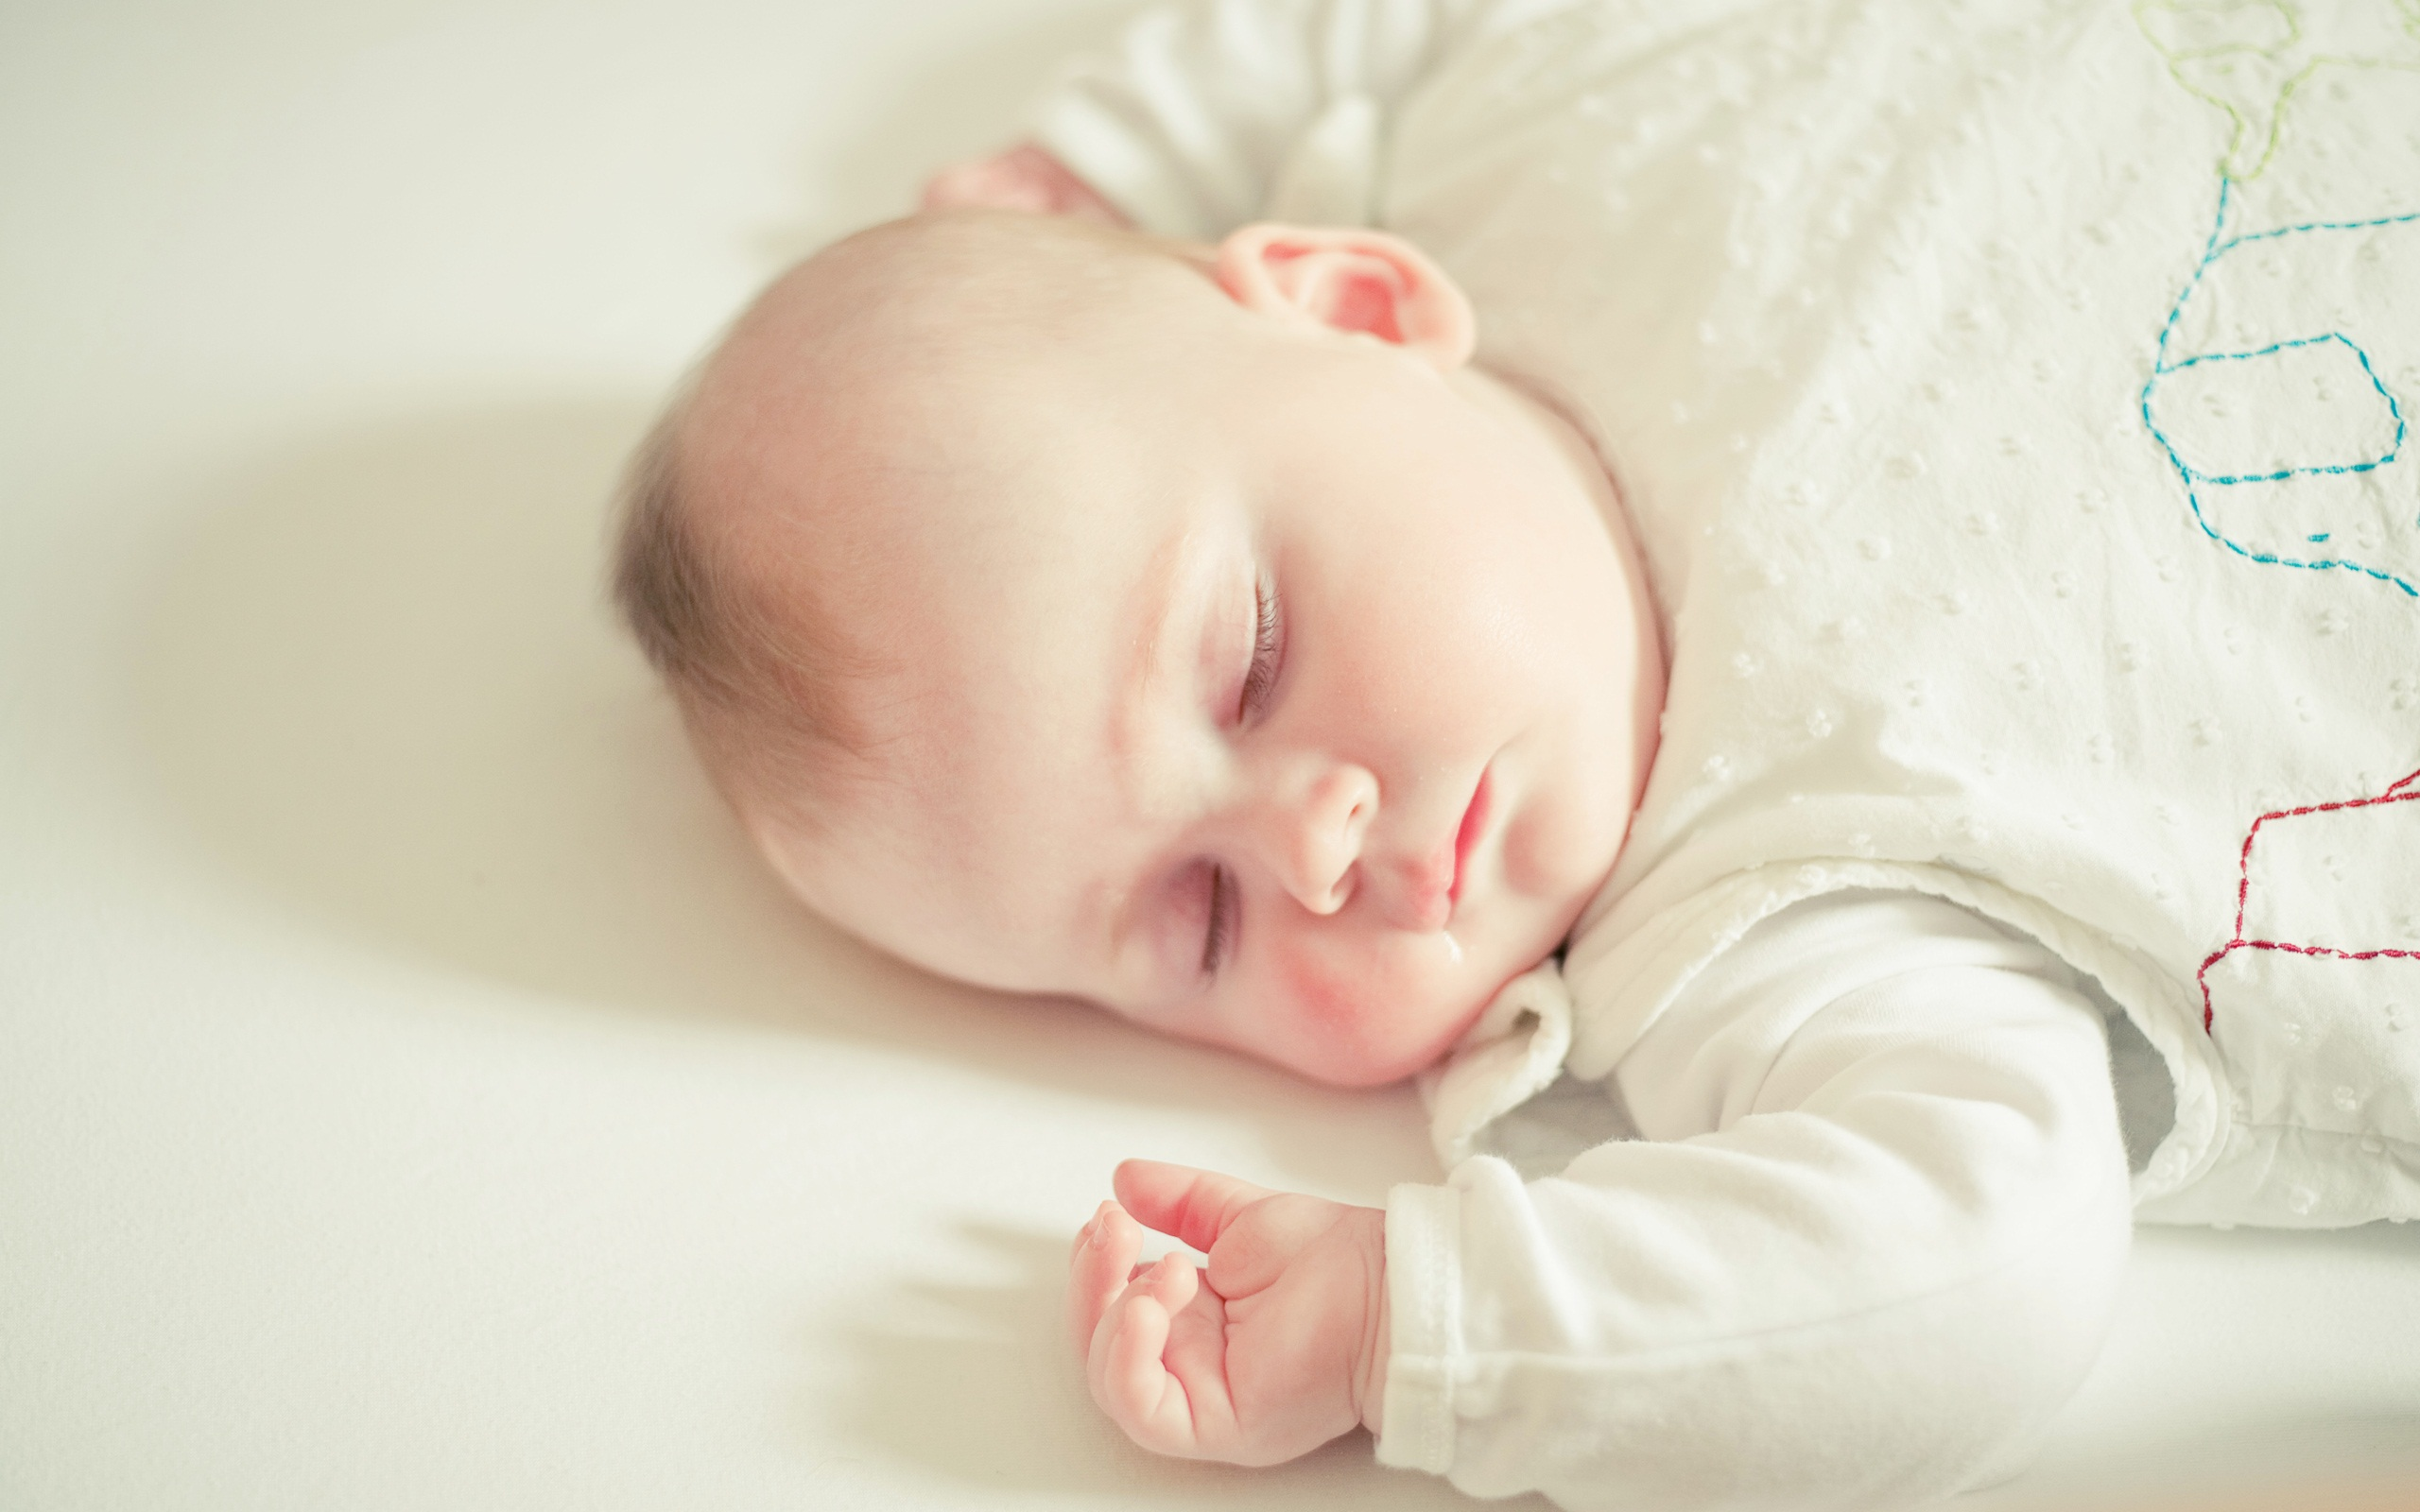 Cute Sleeping Baby Wallpapers HD Wallpapers 2560x1600